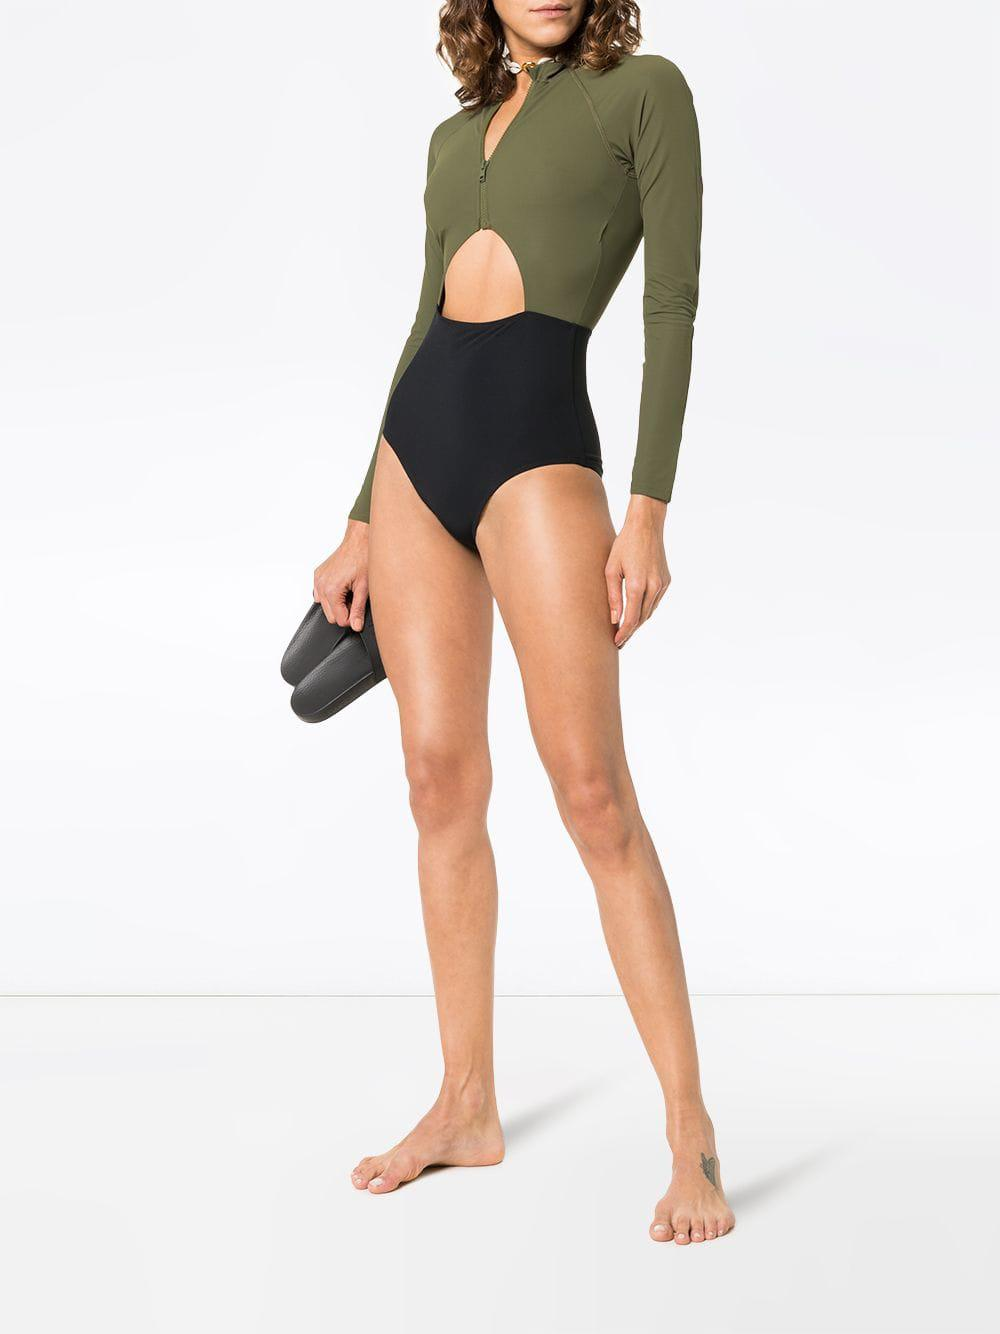 1557a8255ace0 Flagpole Swim - Green Kelly High-neck Zip Front Long-sleeved Swimsuit -  Lyst. View fullscreen